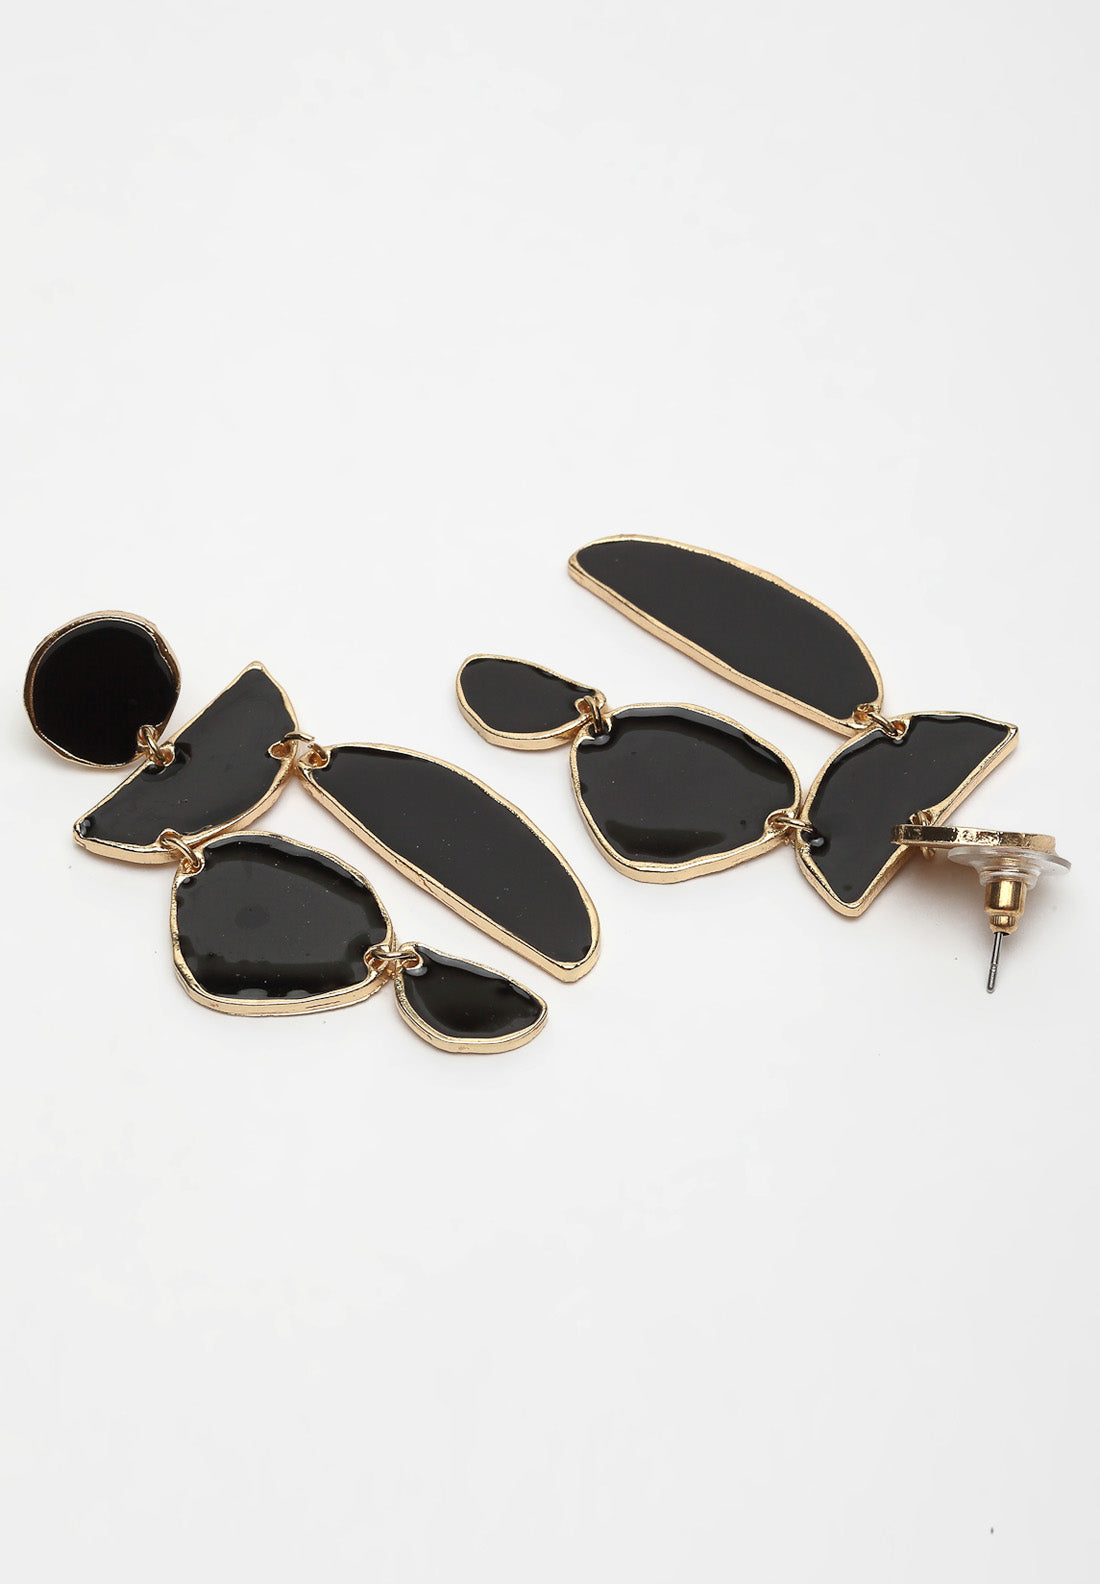 Avant-Garde Paris Gold & Black Geometric Stone Hanging Earrings